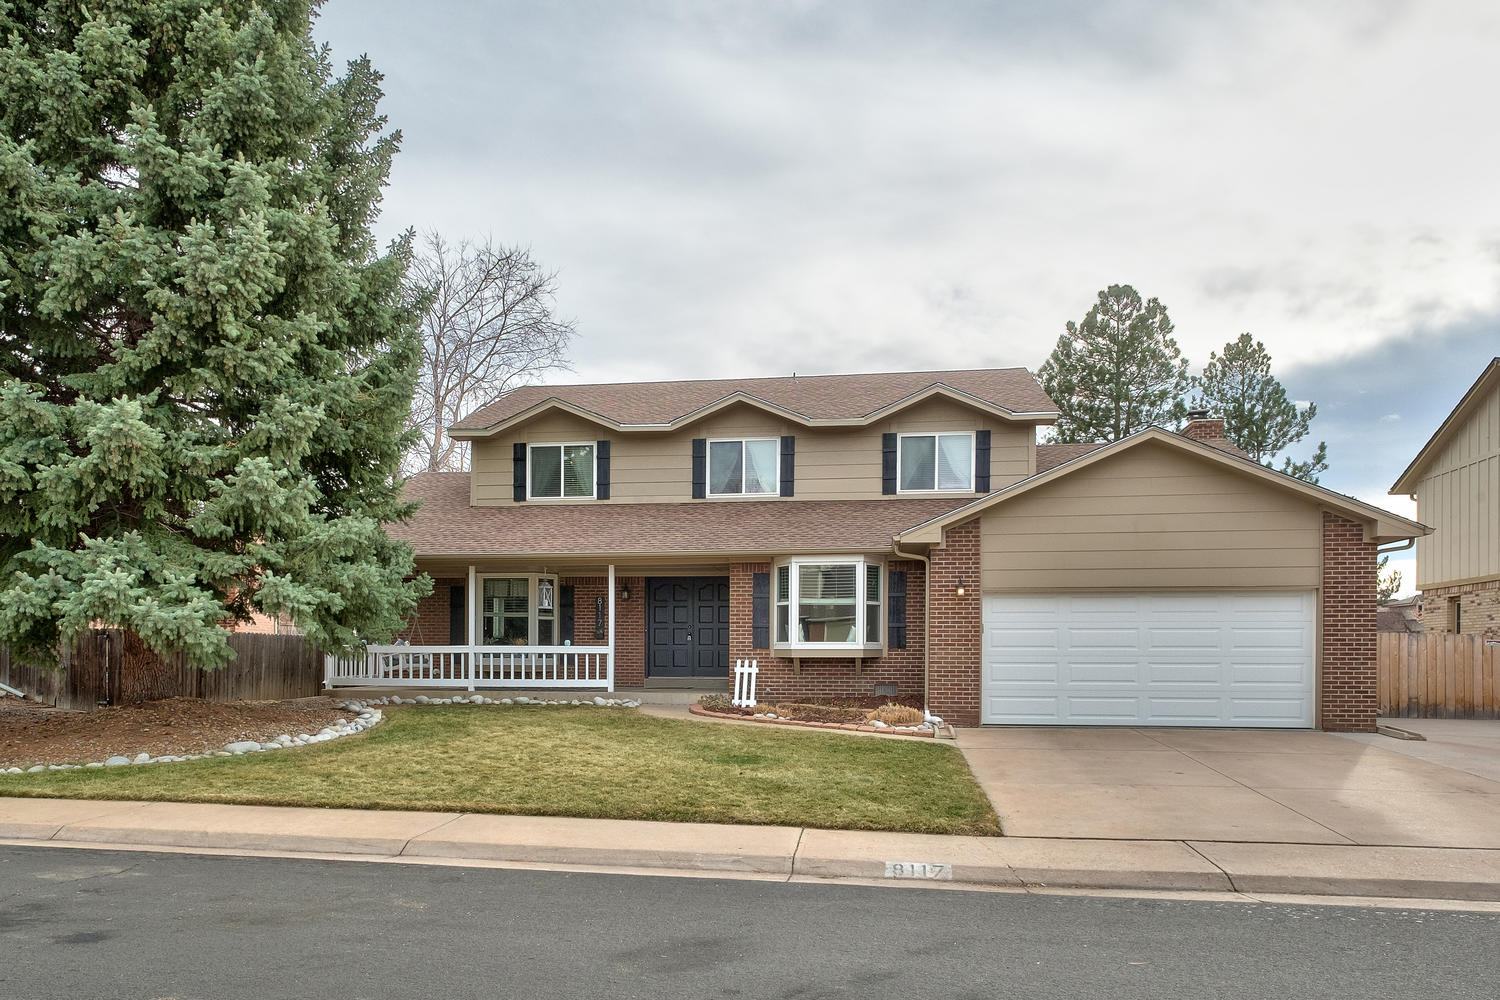 8117 S Garfield Way, Centennial, CO 80122